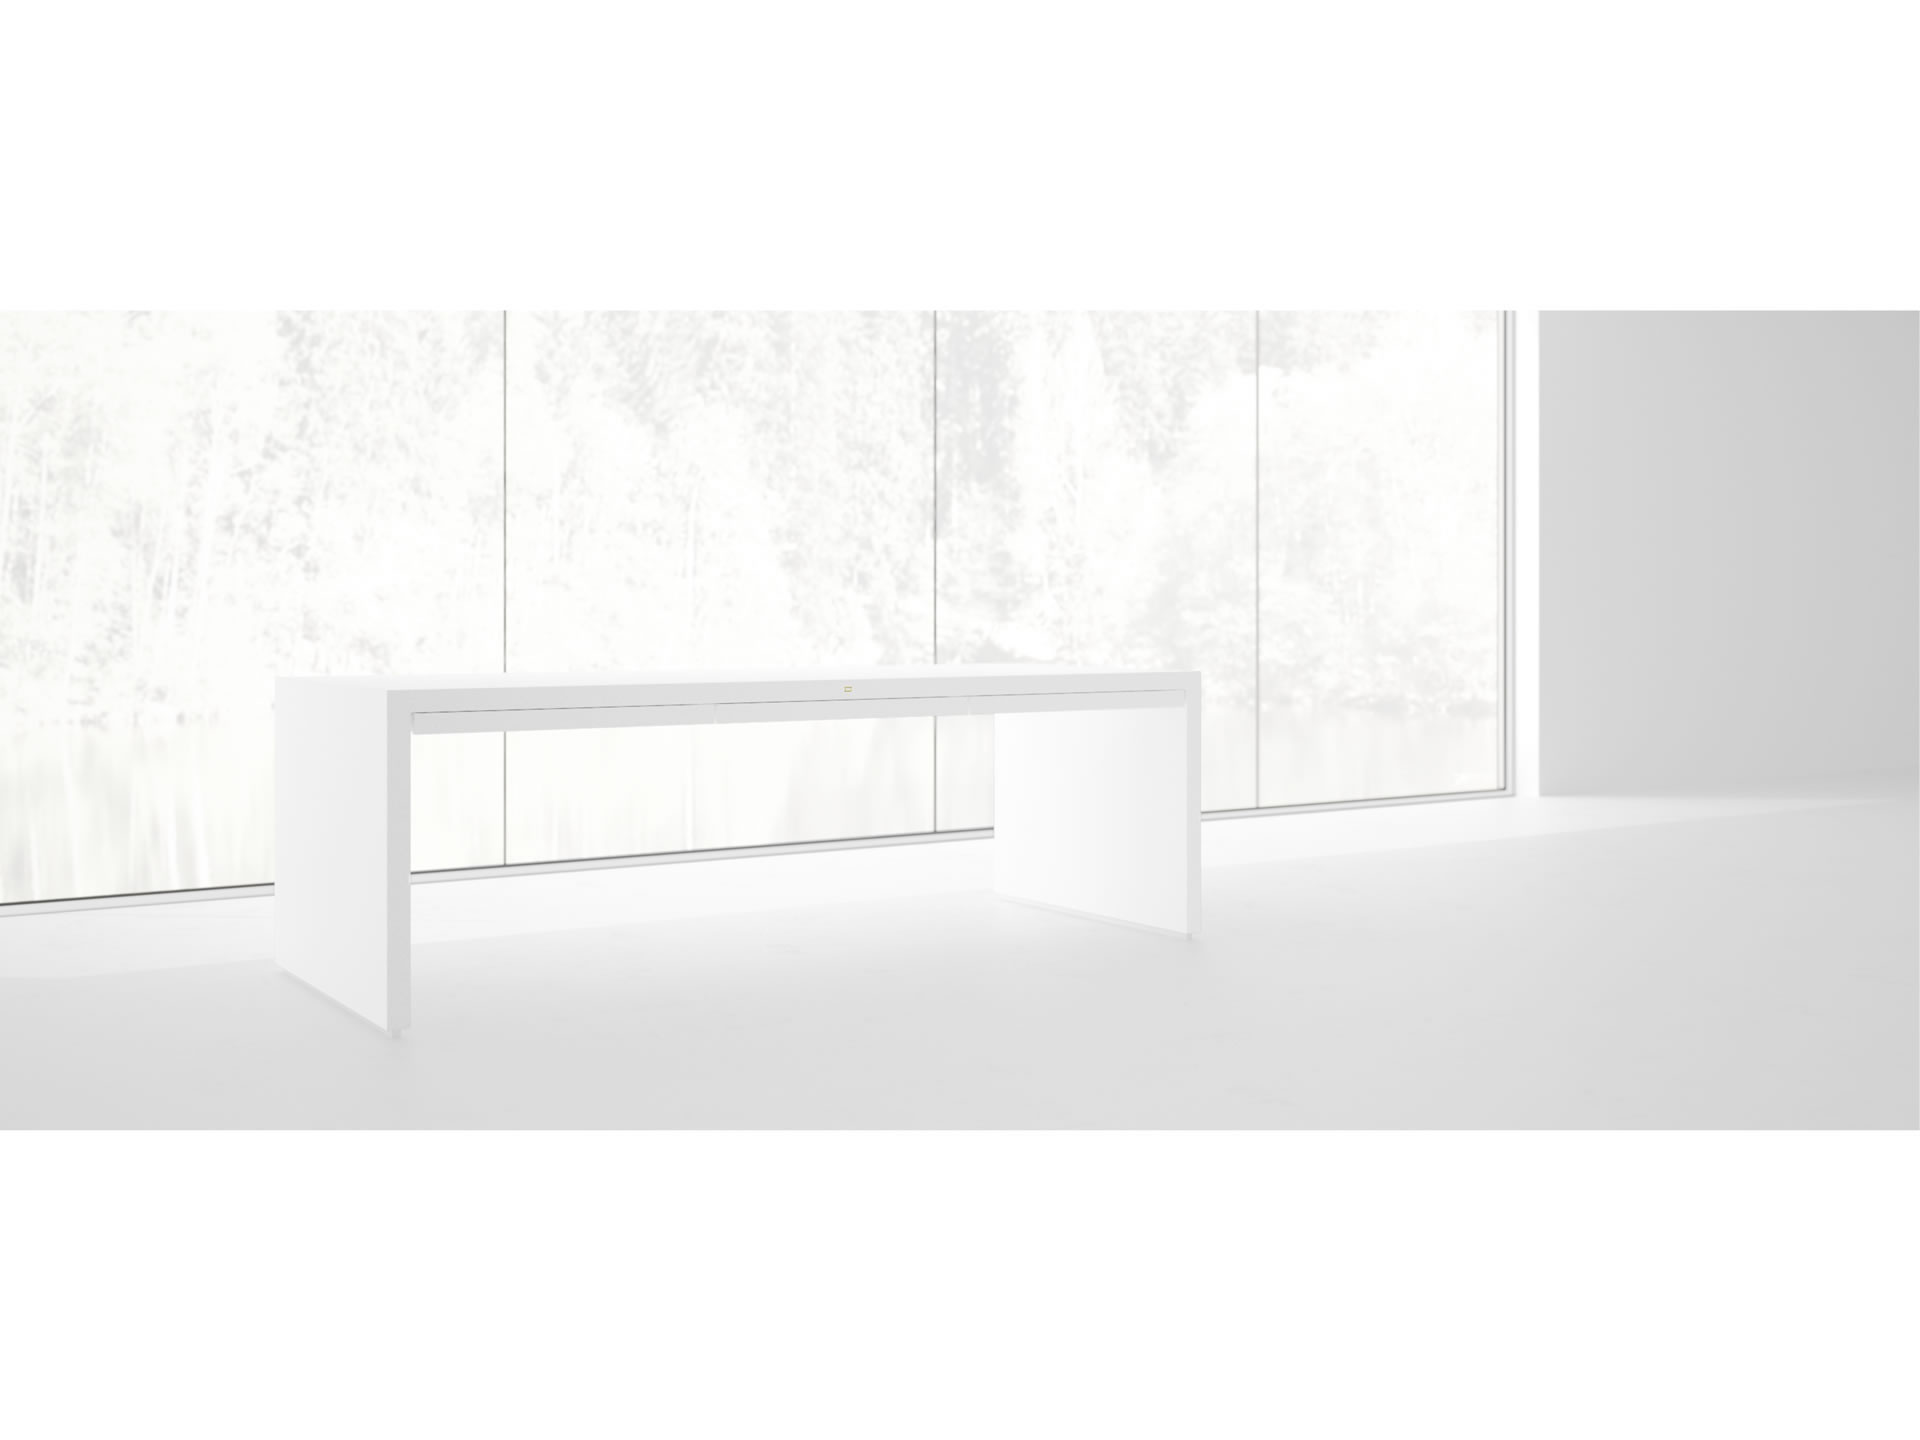 FELIX SCHWAKE TABLE I I Sublime White U Shaped Table with Closed Legs and Drawers